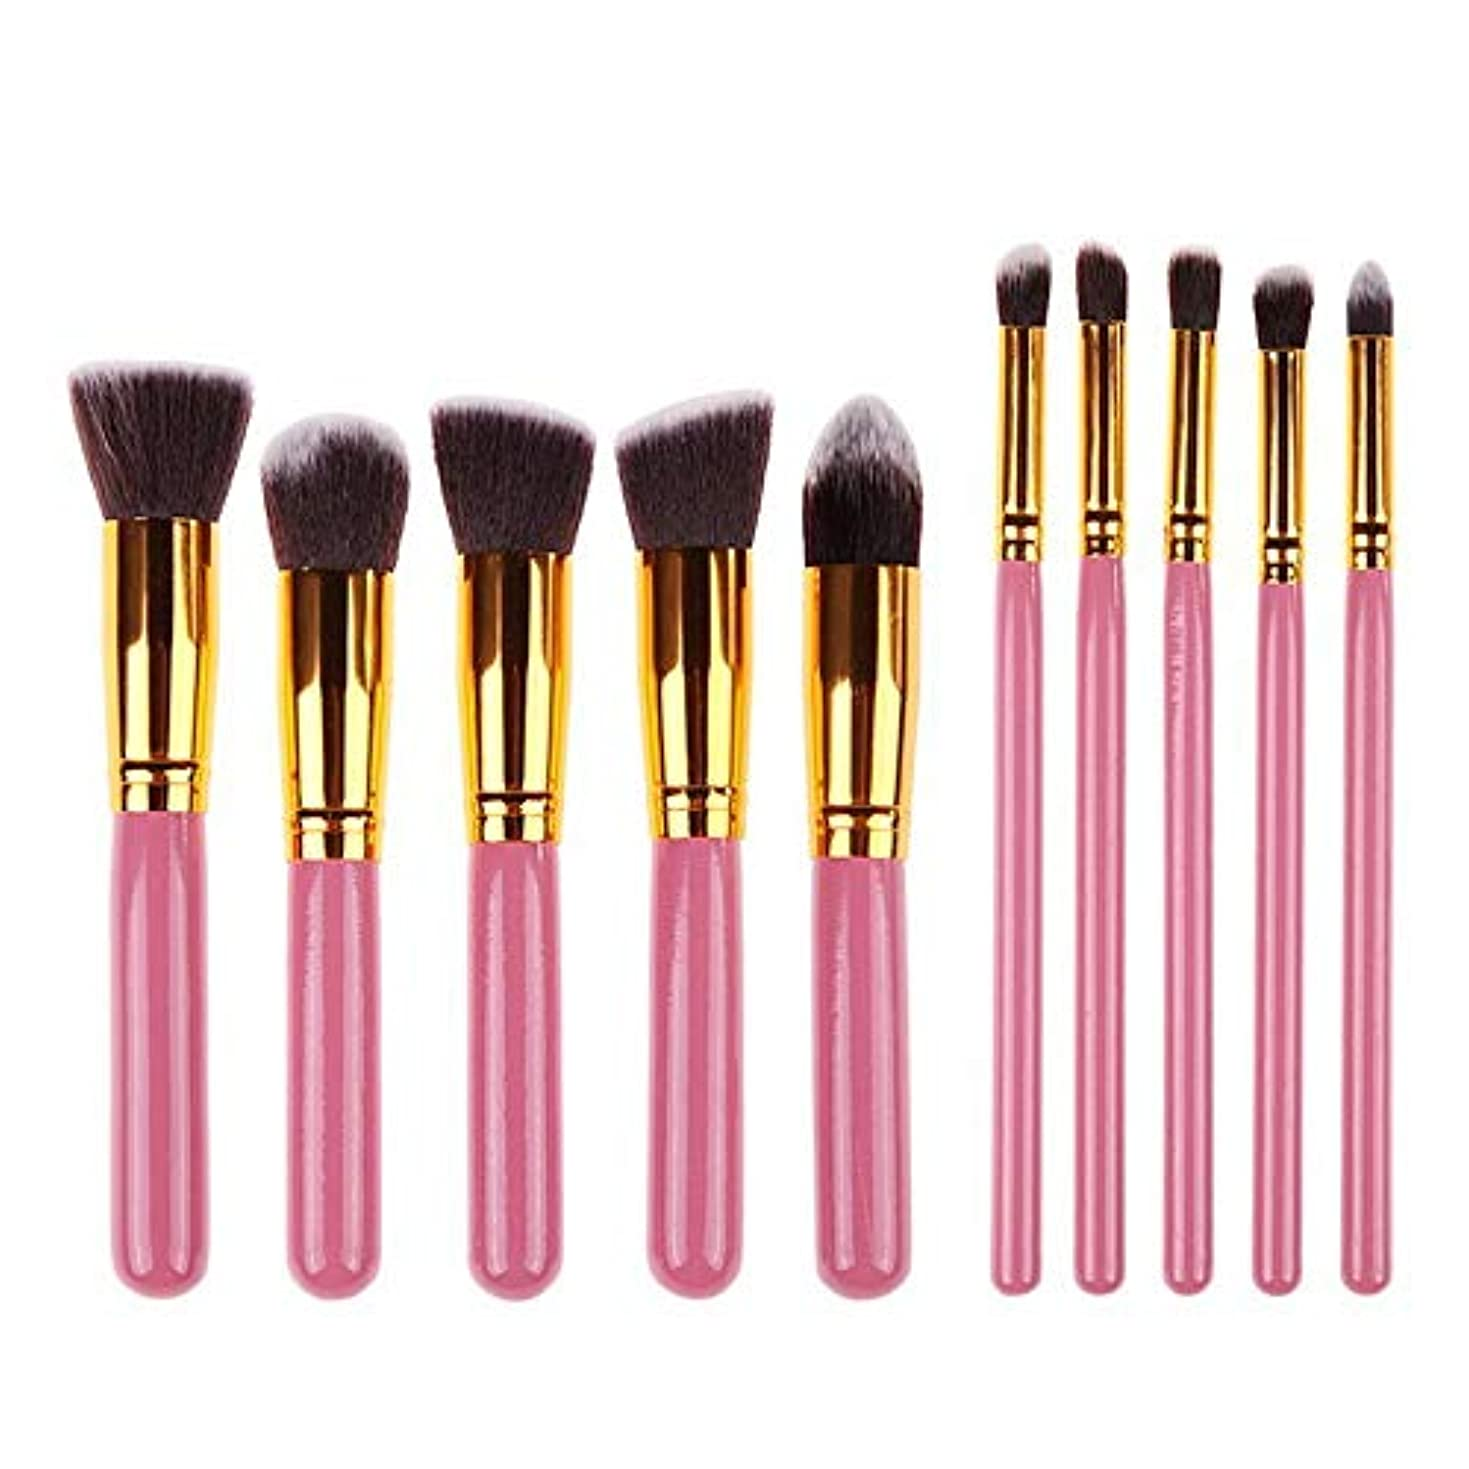 Makeup brushes 10ピースピンクメイクアップブラシセット革新的な簡単パウダーパウダーアイシャドウブラシ輪郭ブラシ suits (Color : Pink Gold)